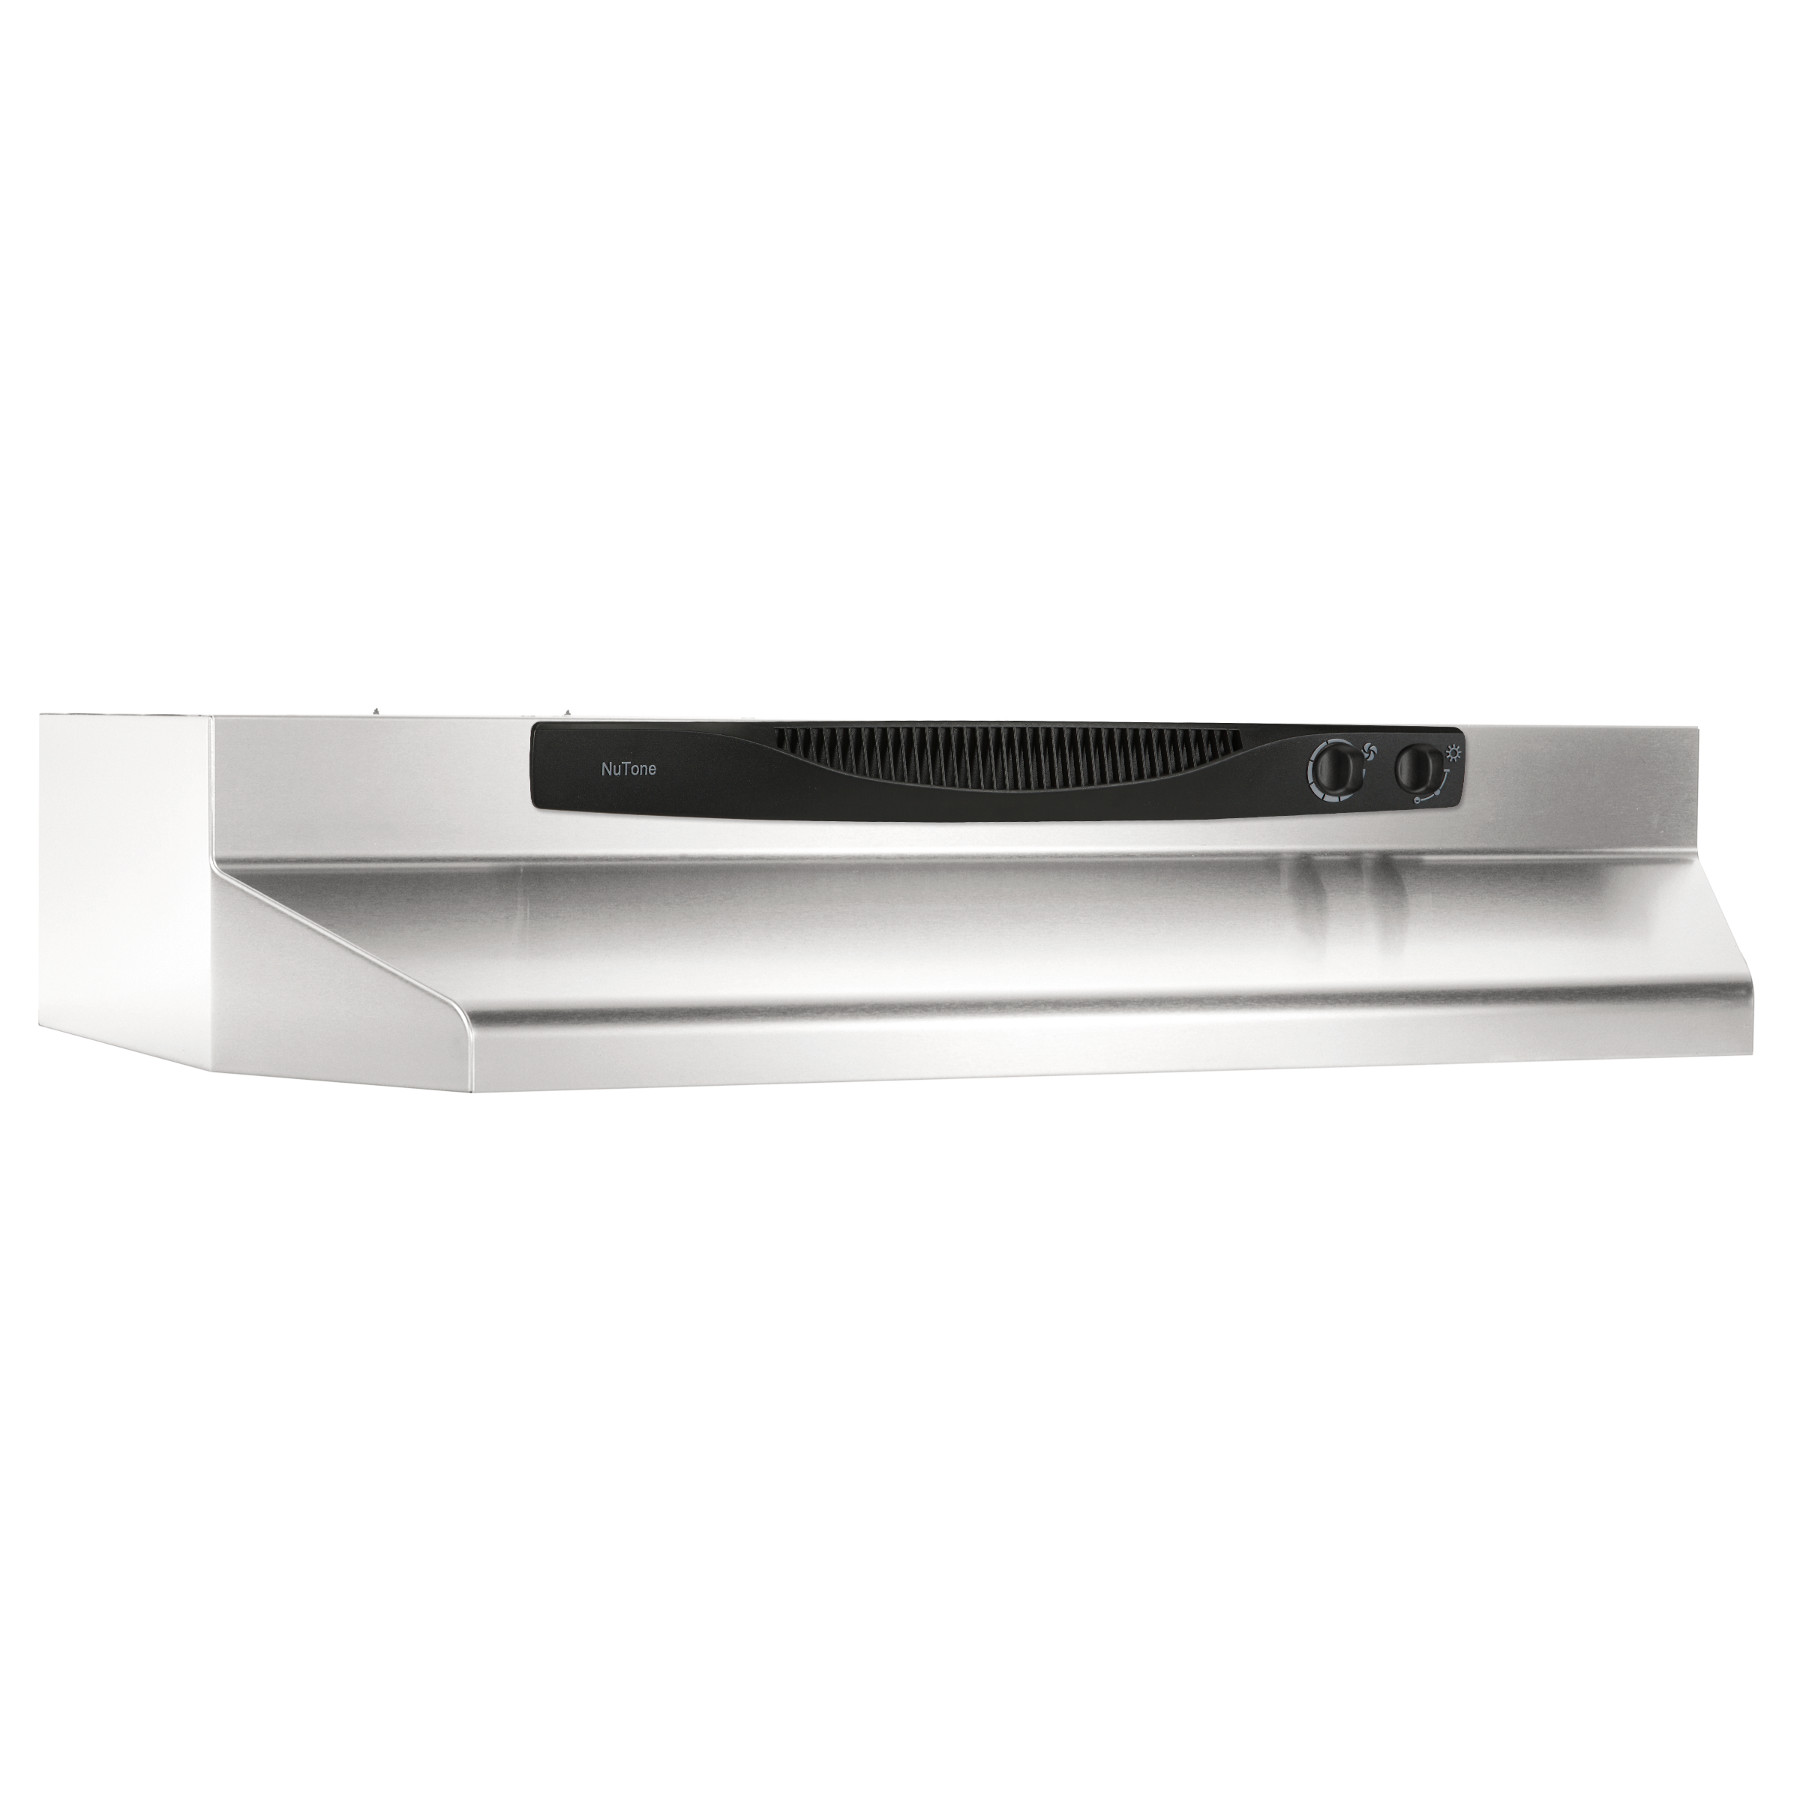 Acs30ss Nutone 30 Inch Convertible Under Cabinet Range Hood 220 Cfm Stainless Steel